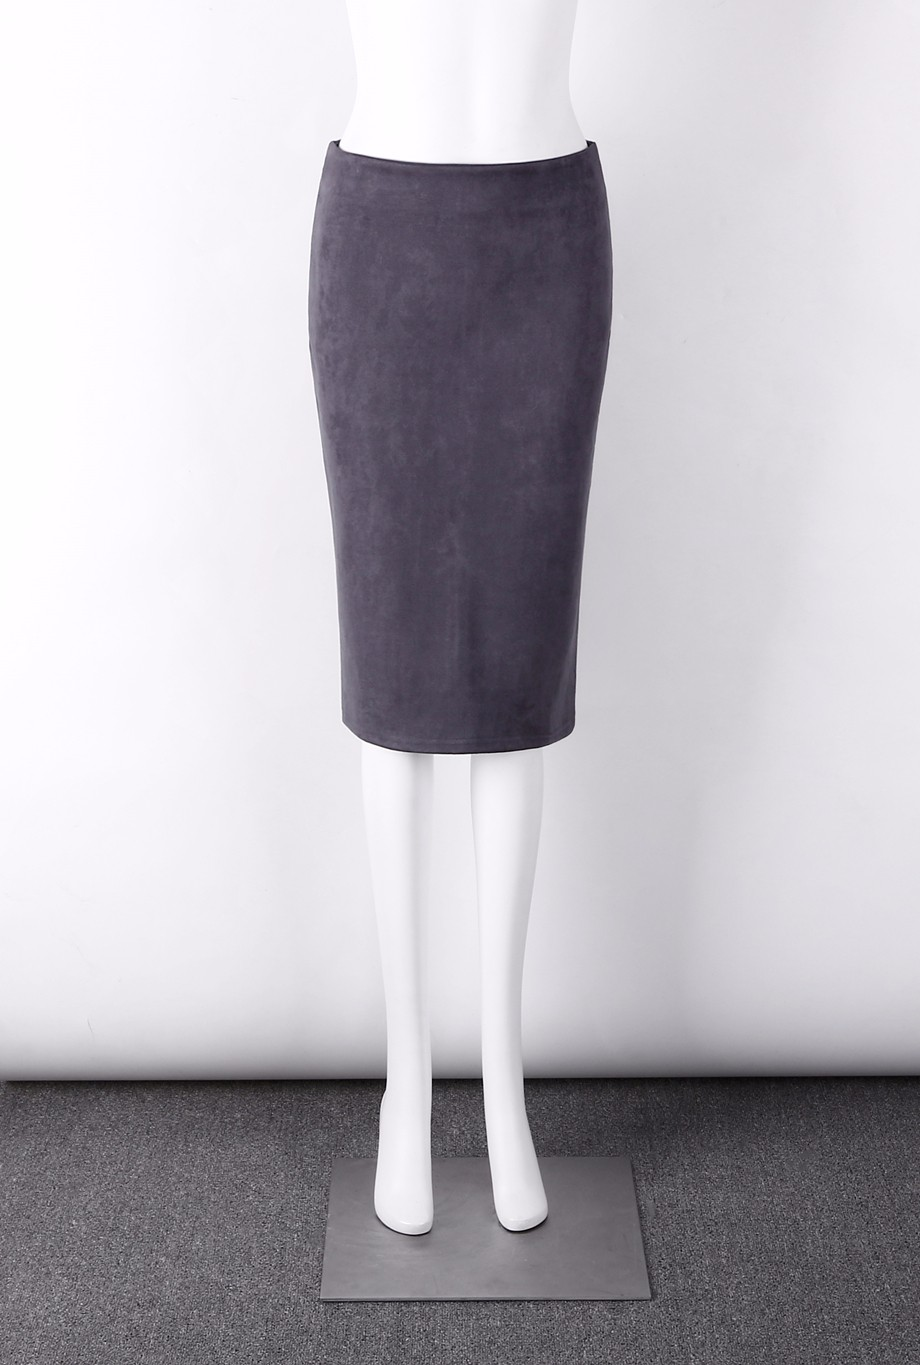 Neophil 19 Winter Women Suede Midi Pencil Skirt High Waist Gray Pink XXL Sexy Style Stretch Wrap Ladies Office Work Saia S1009 25